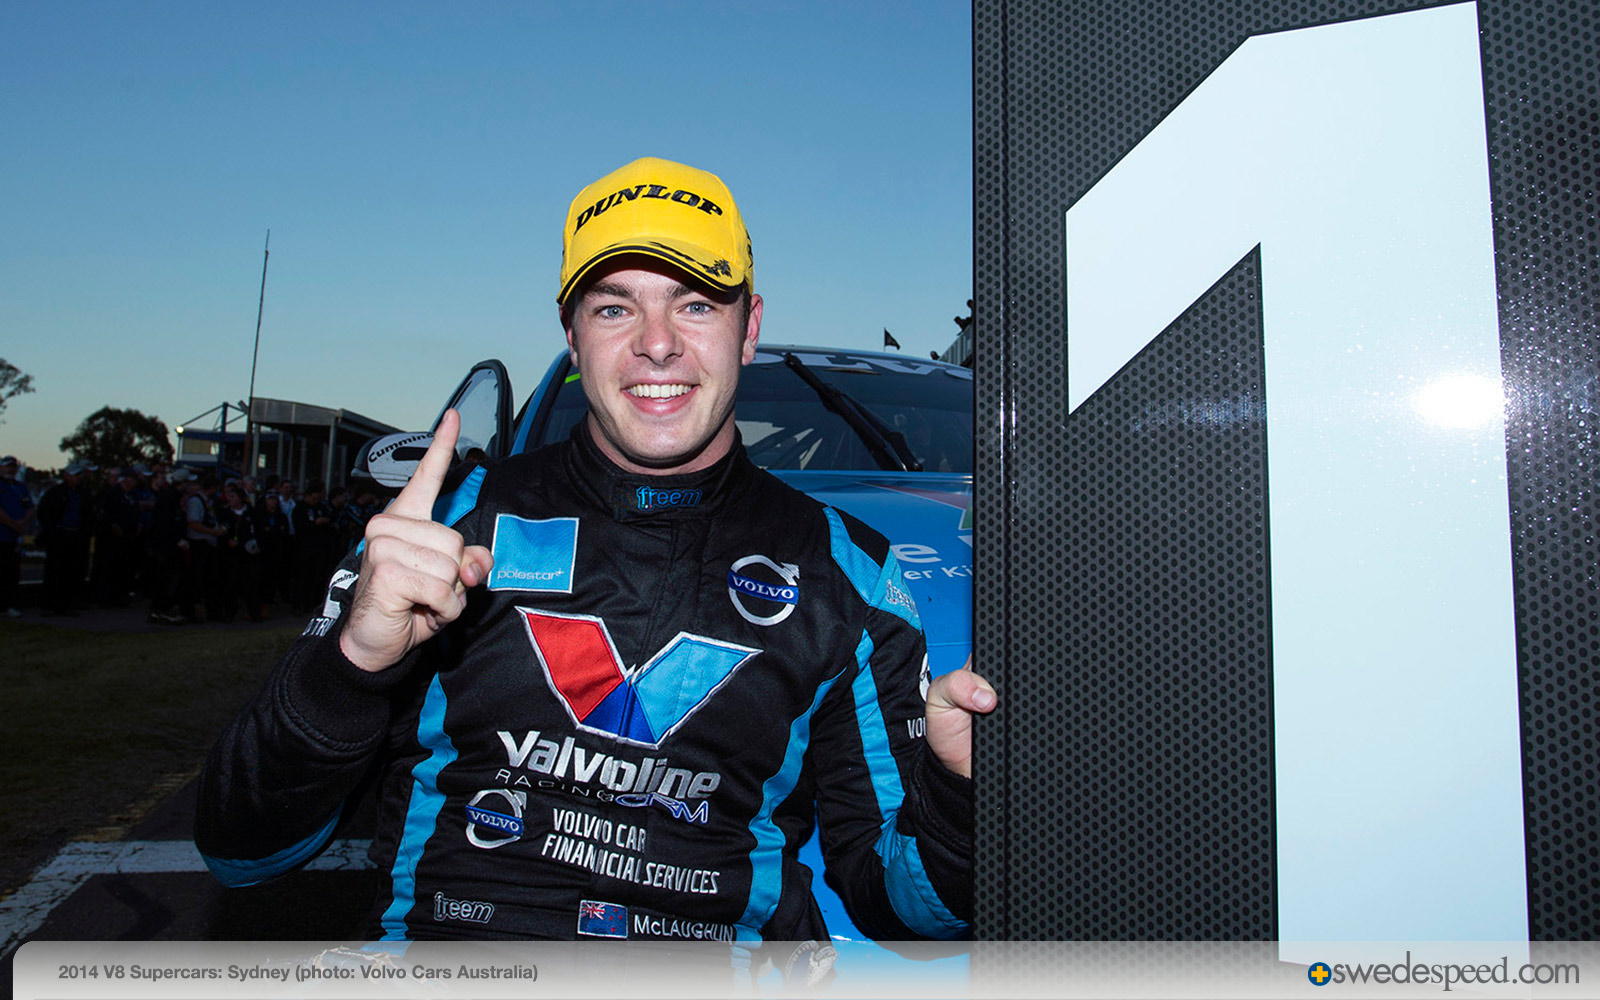 Victory in Sydney, V8 Supercars Series